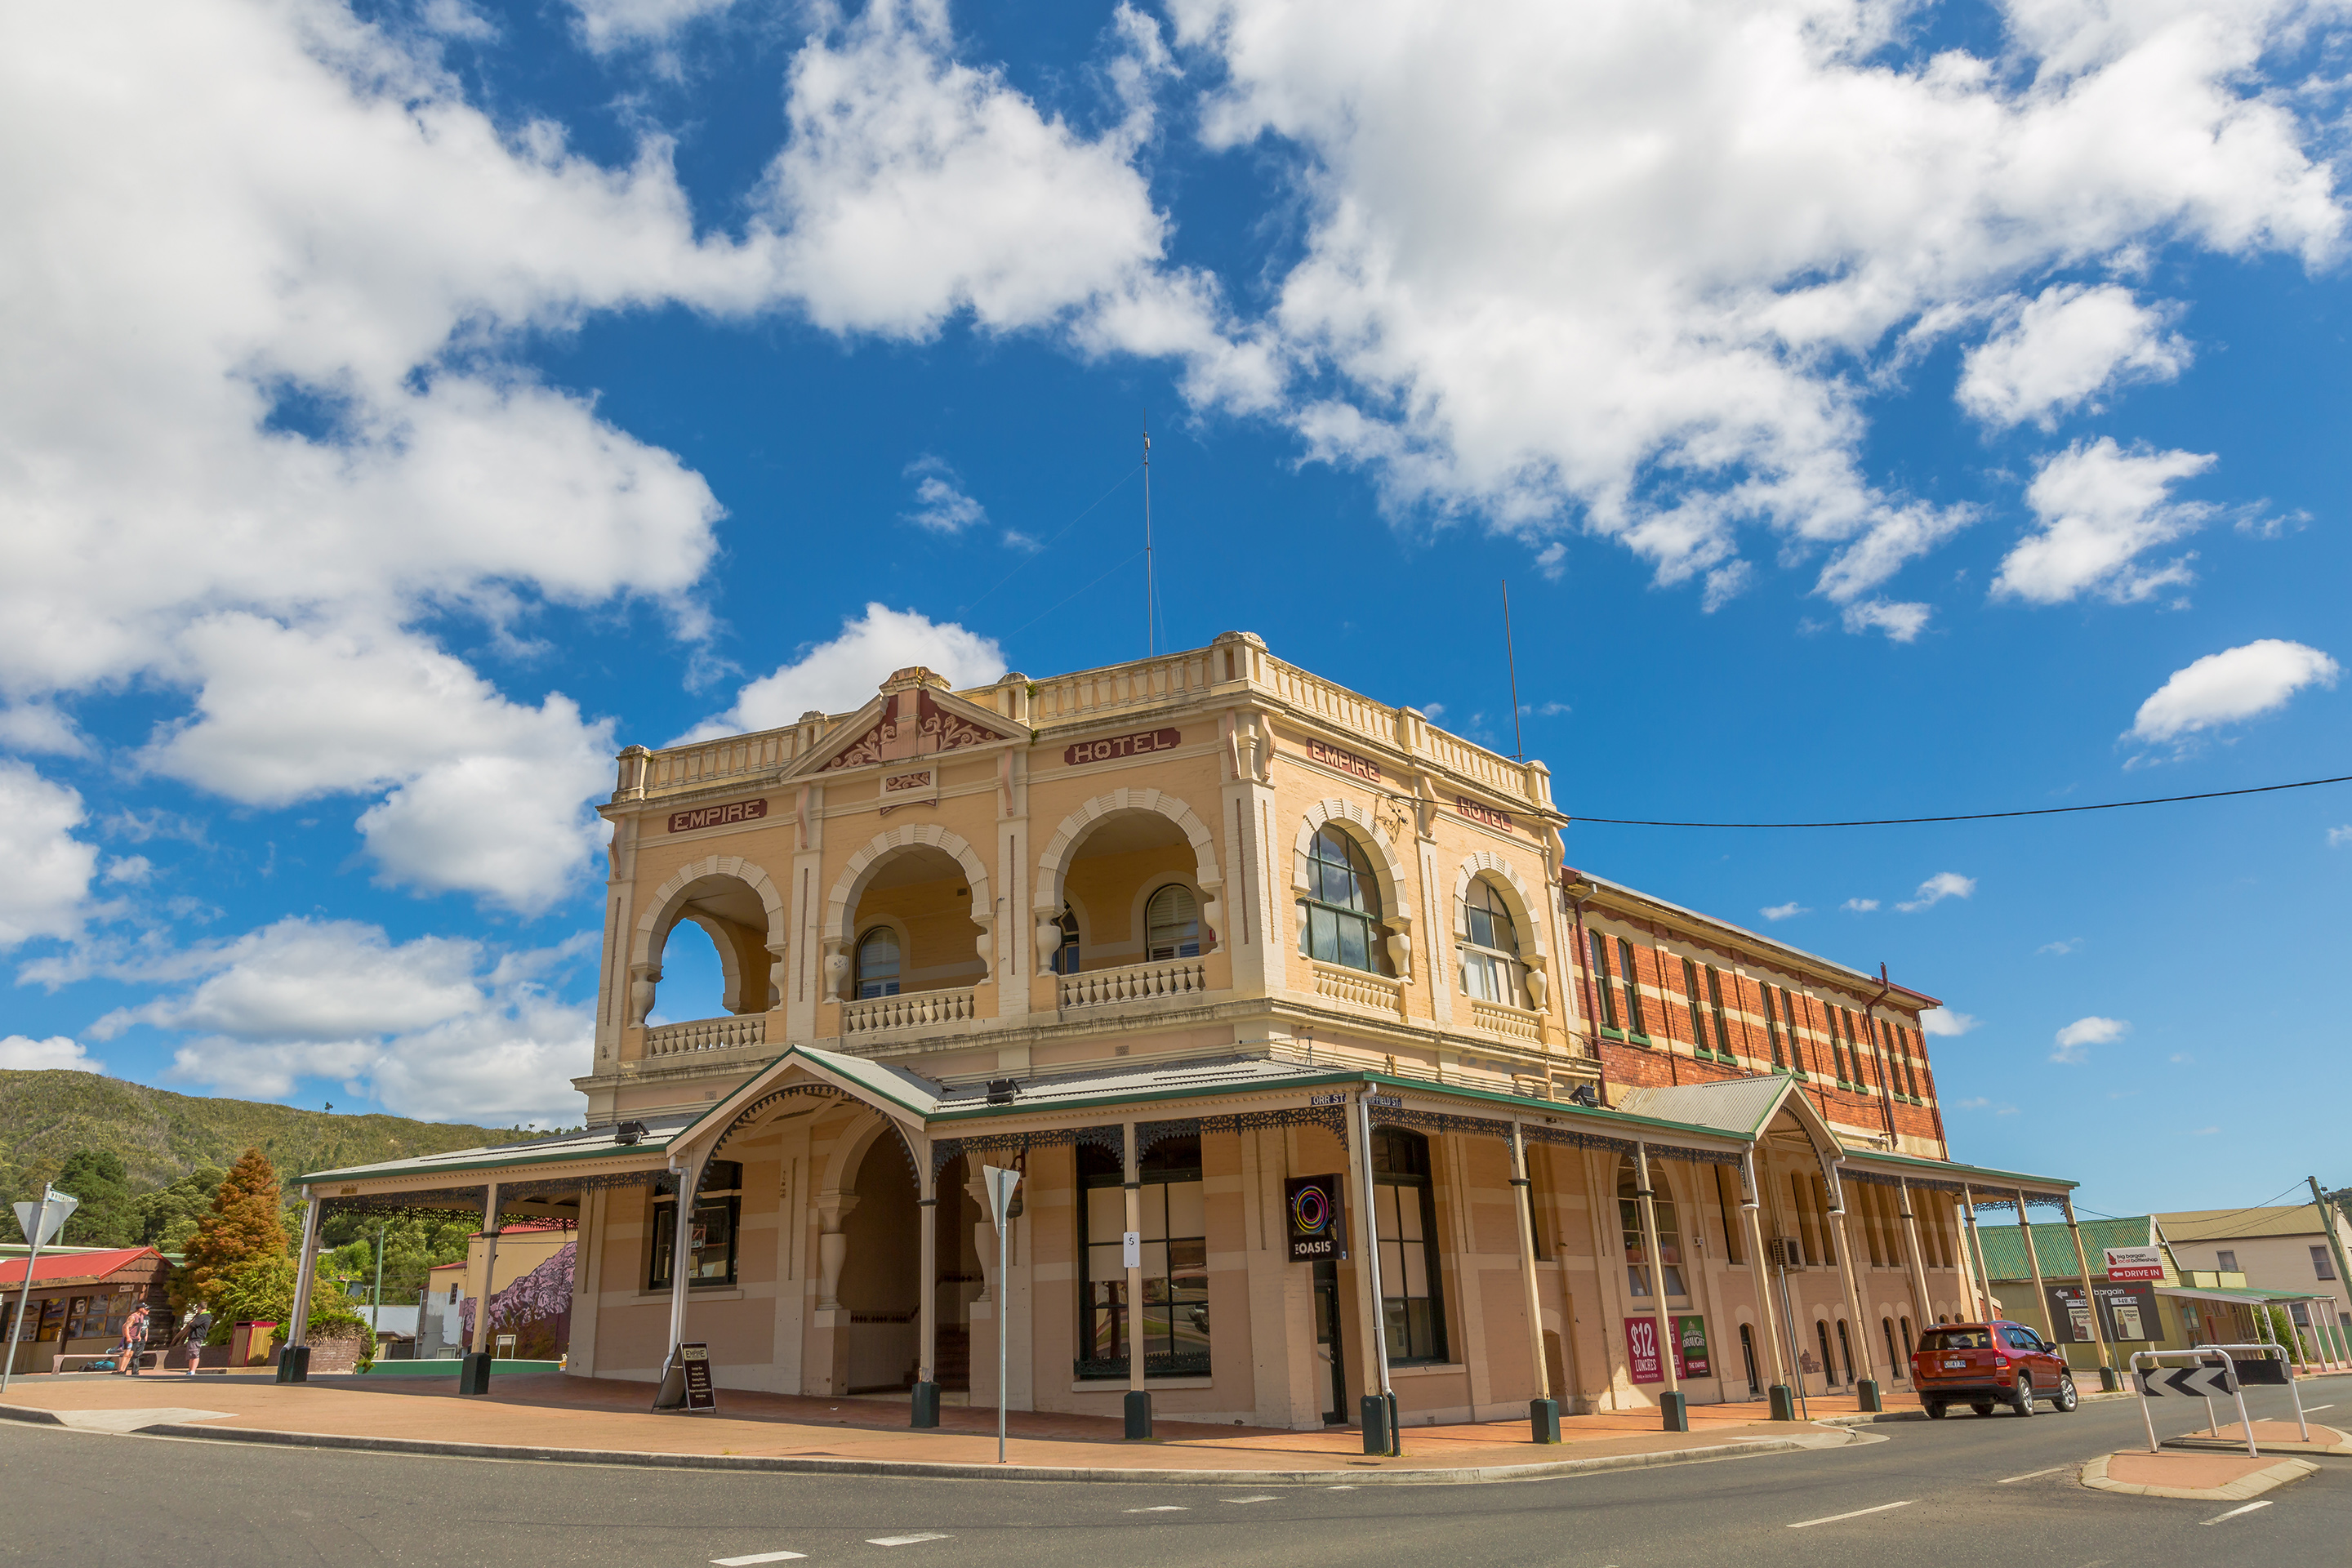 Queenstown, Tasmania, Australia - January 10, 2015: Empire Hotel in Victorian style, in historic Queenstown, the largest town on Tasmanias west coast